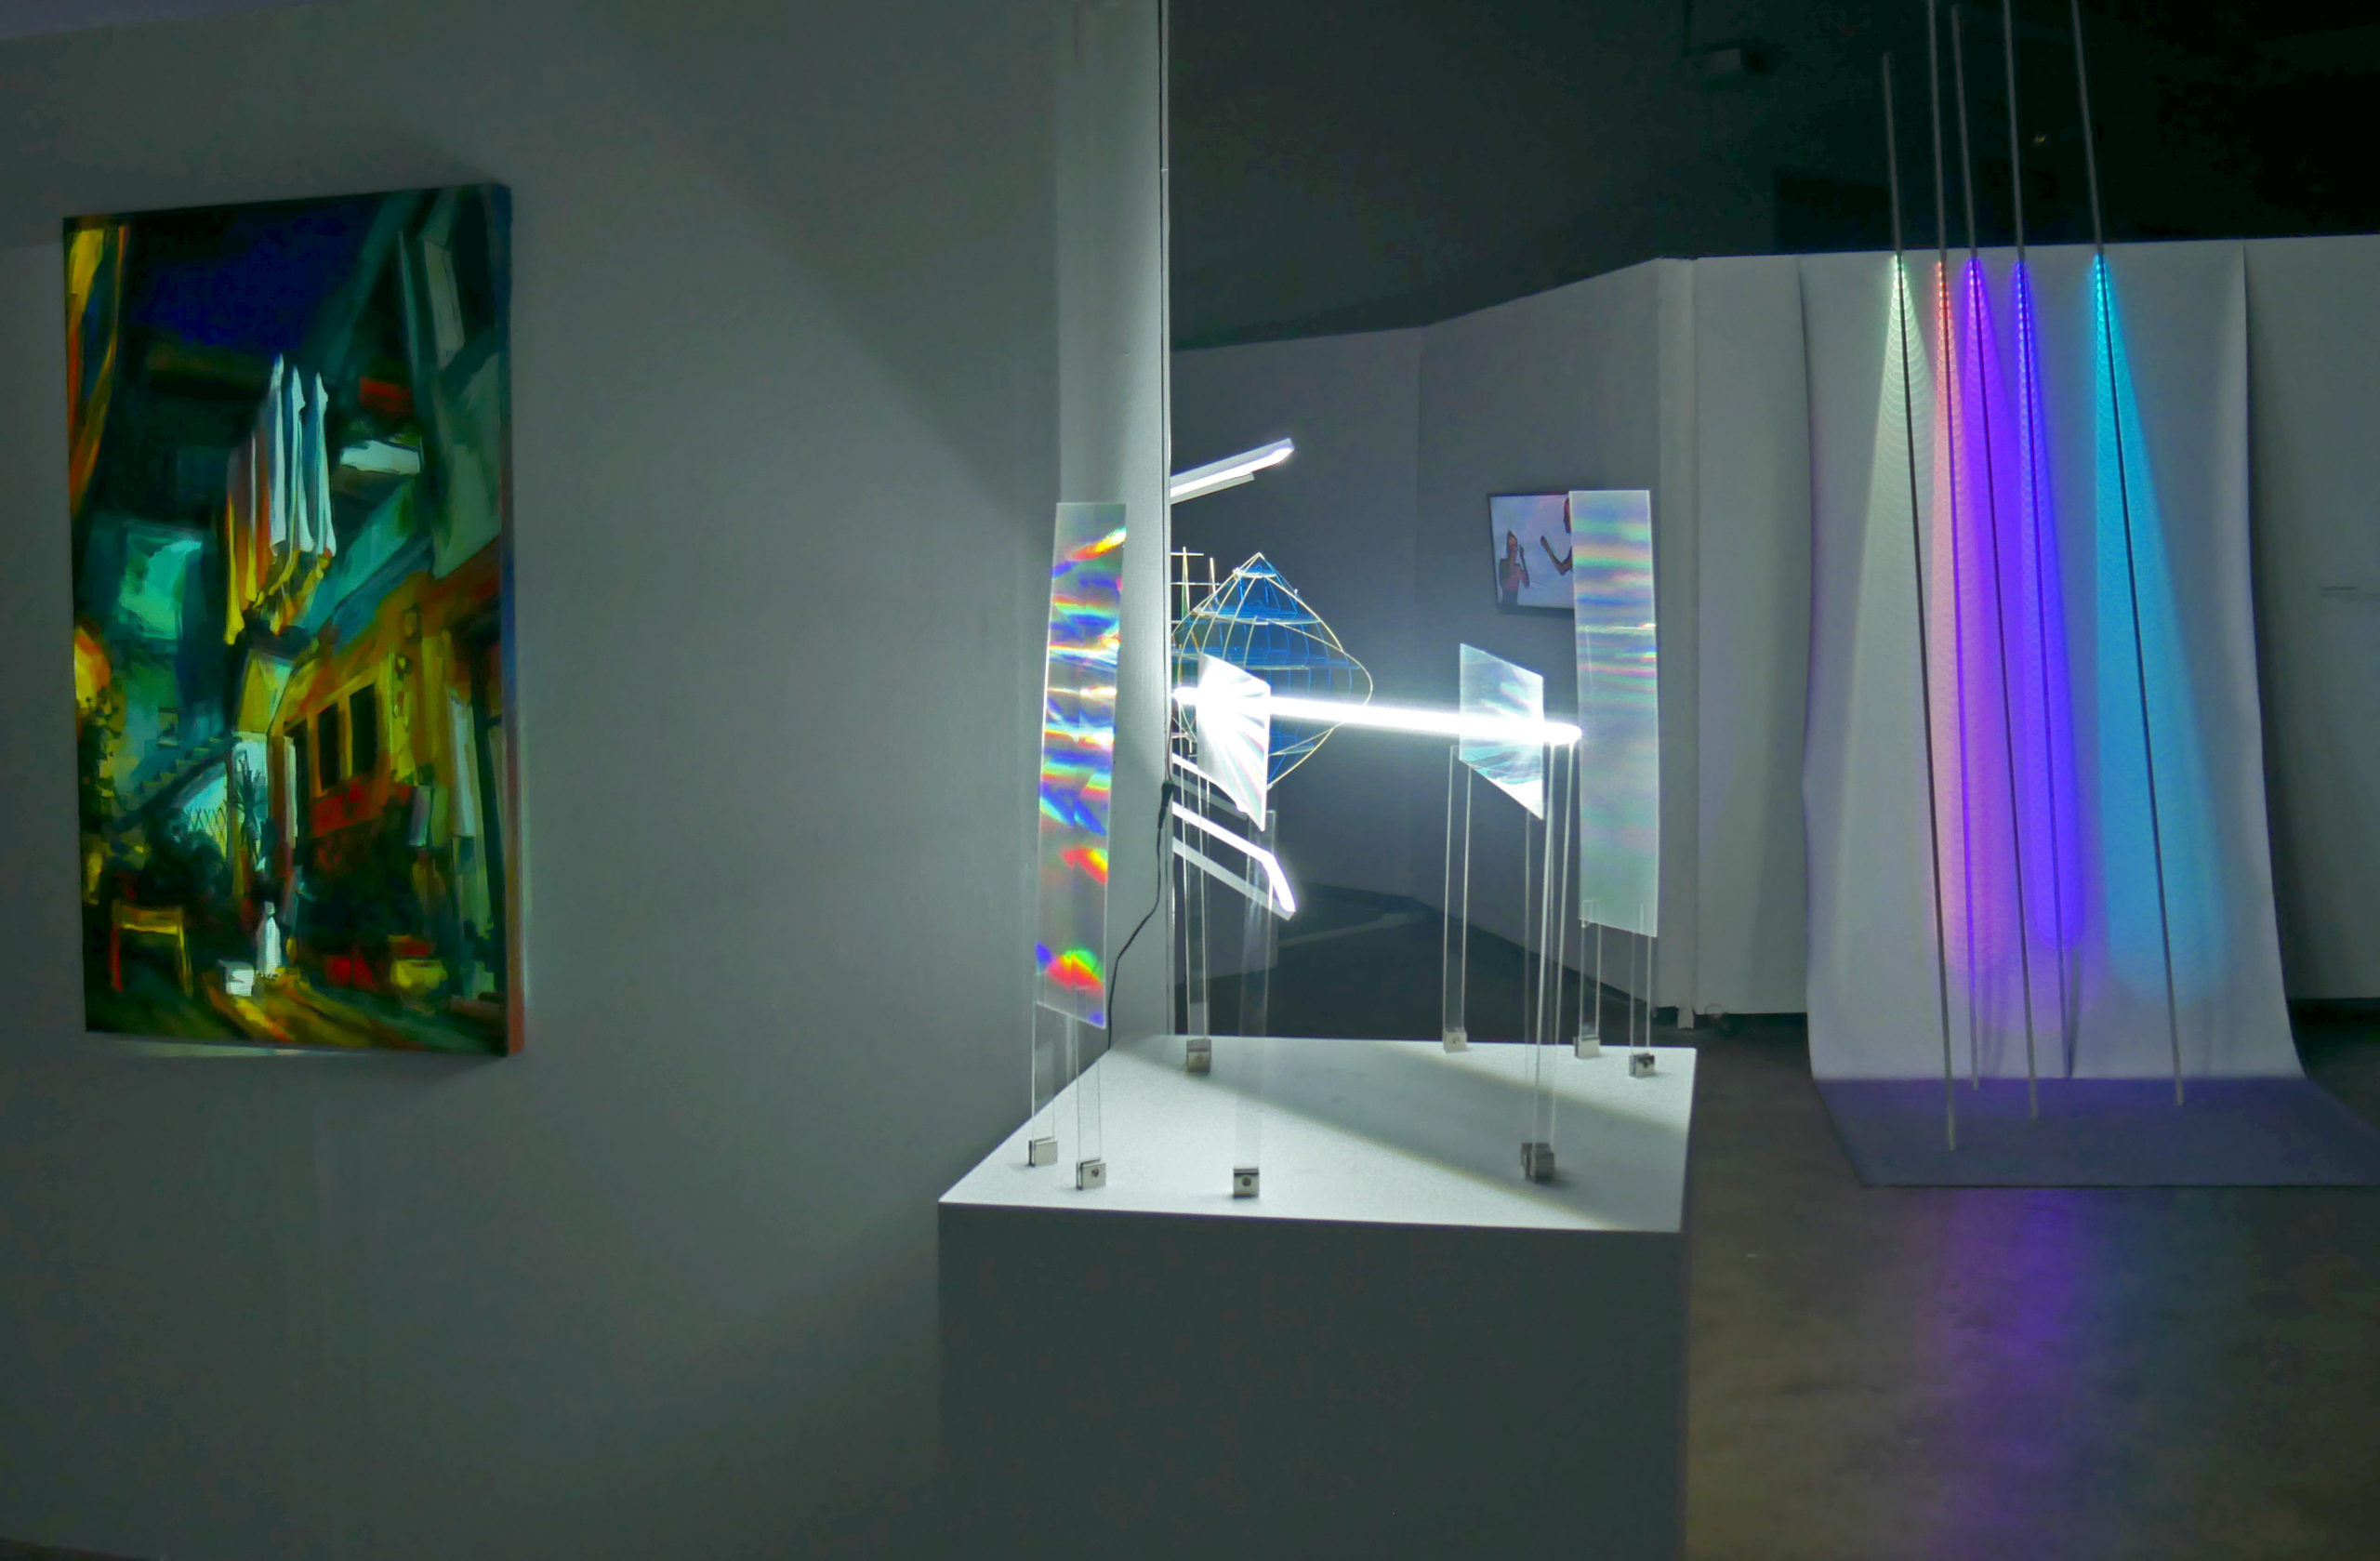 Installation View Space light at the Plaxall Gallery